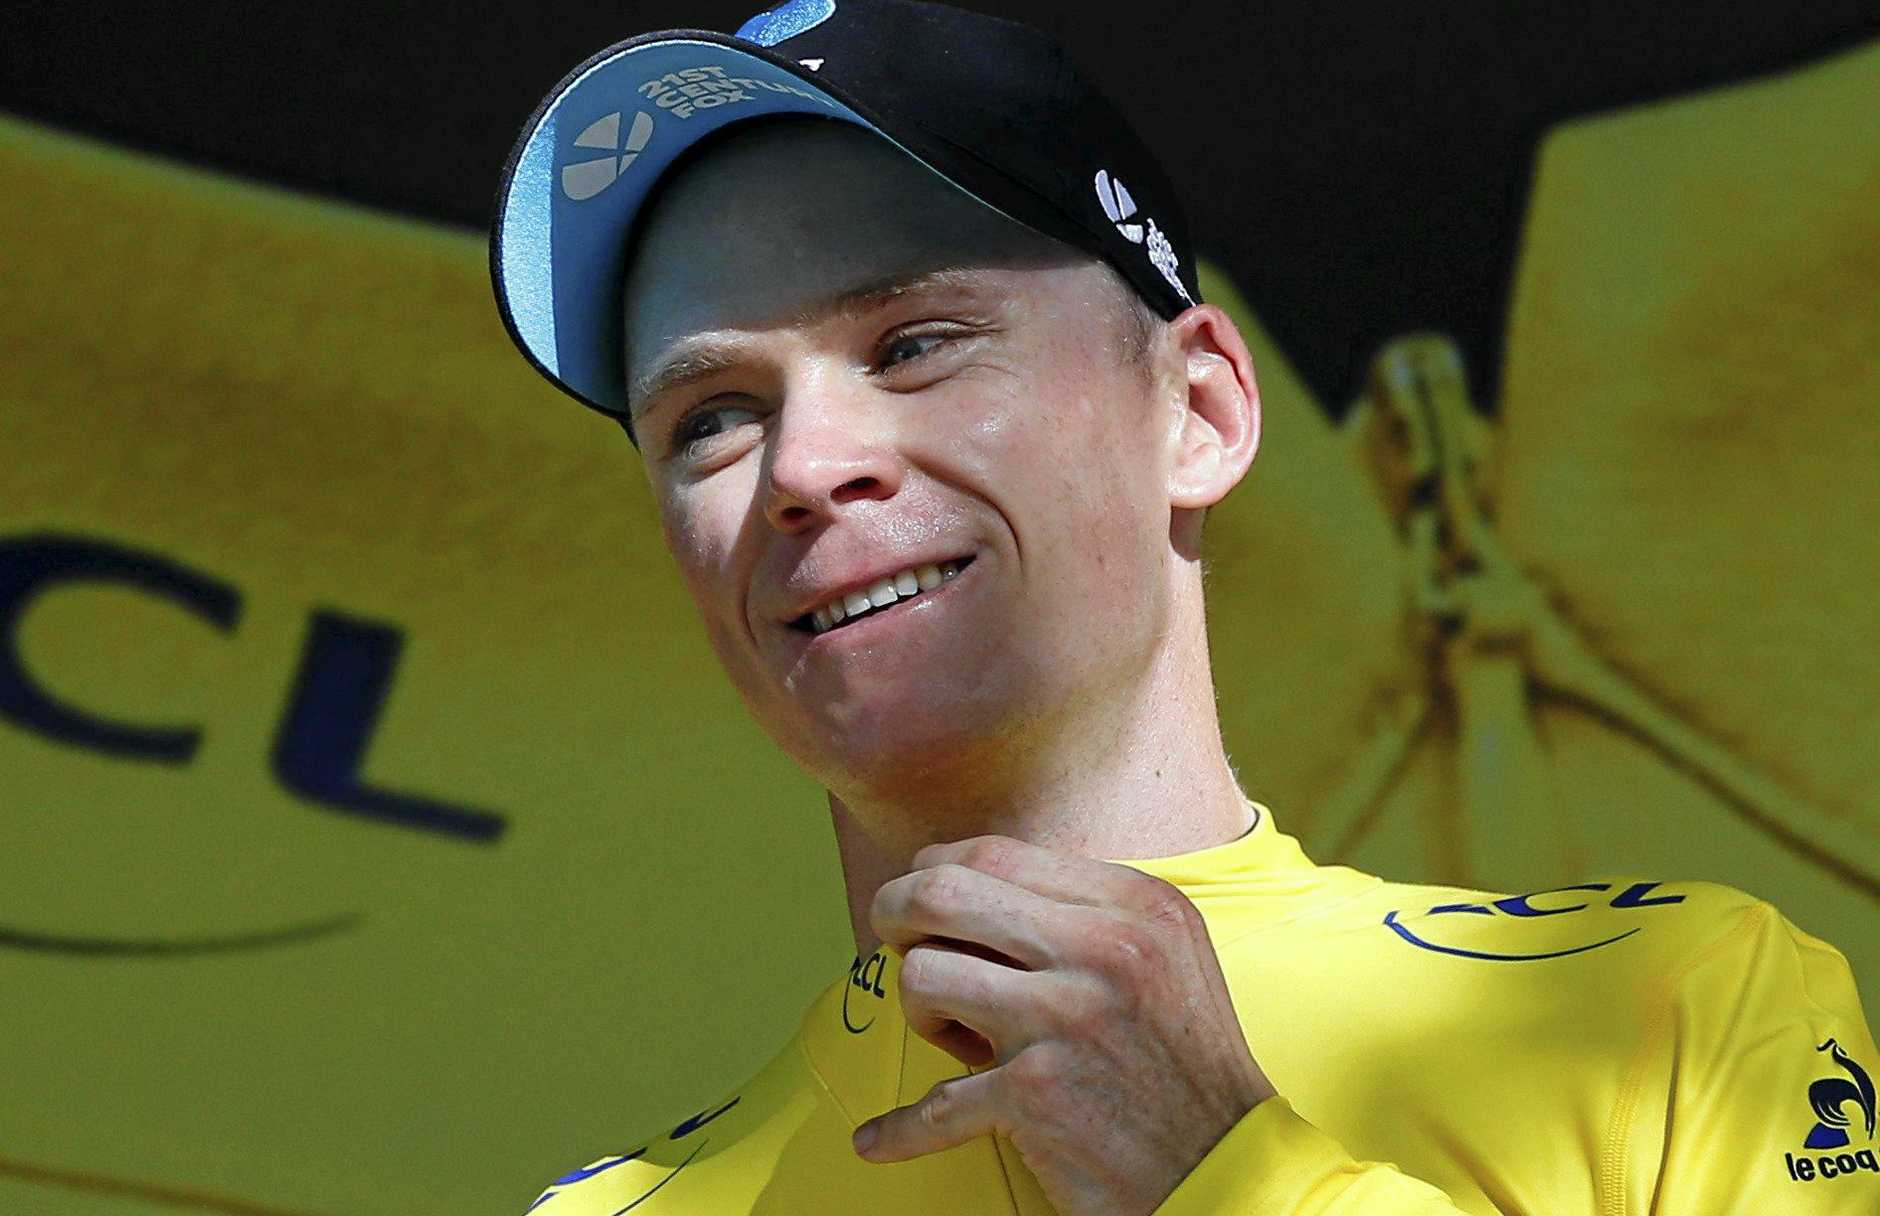 Britain's Chris Froome, wearing the overall leader's yellow jersey, celebrates on the podium after the 16th stage of the 2016 Tour de France.